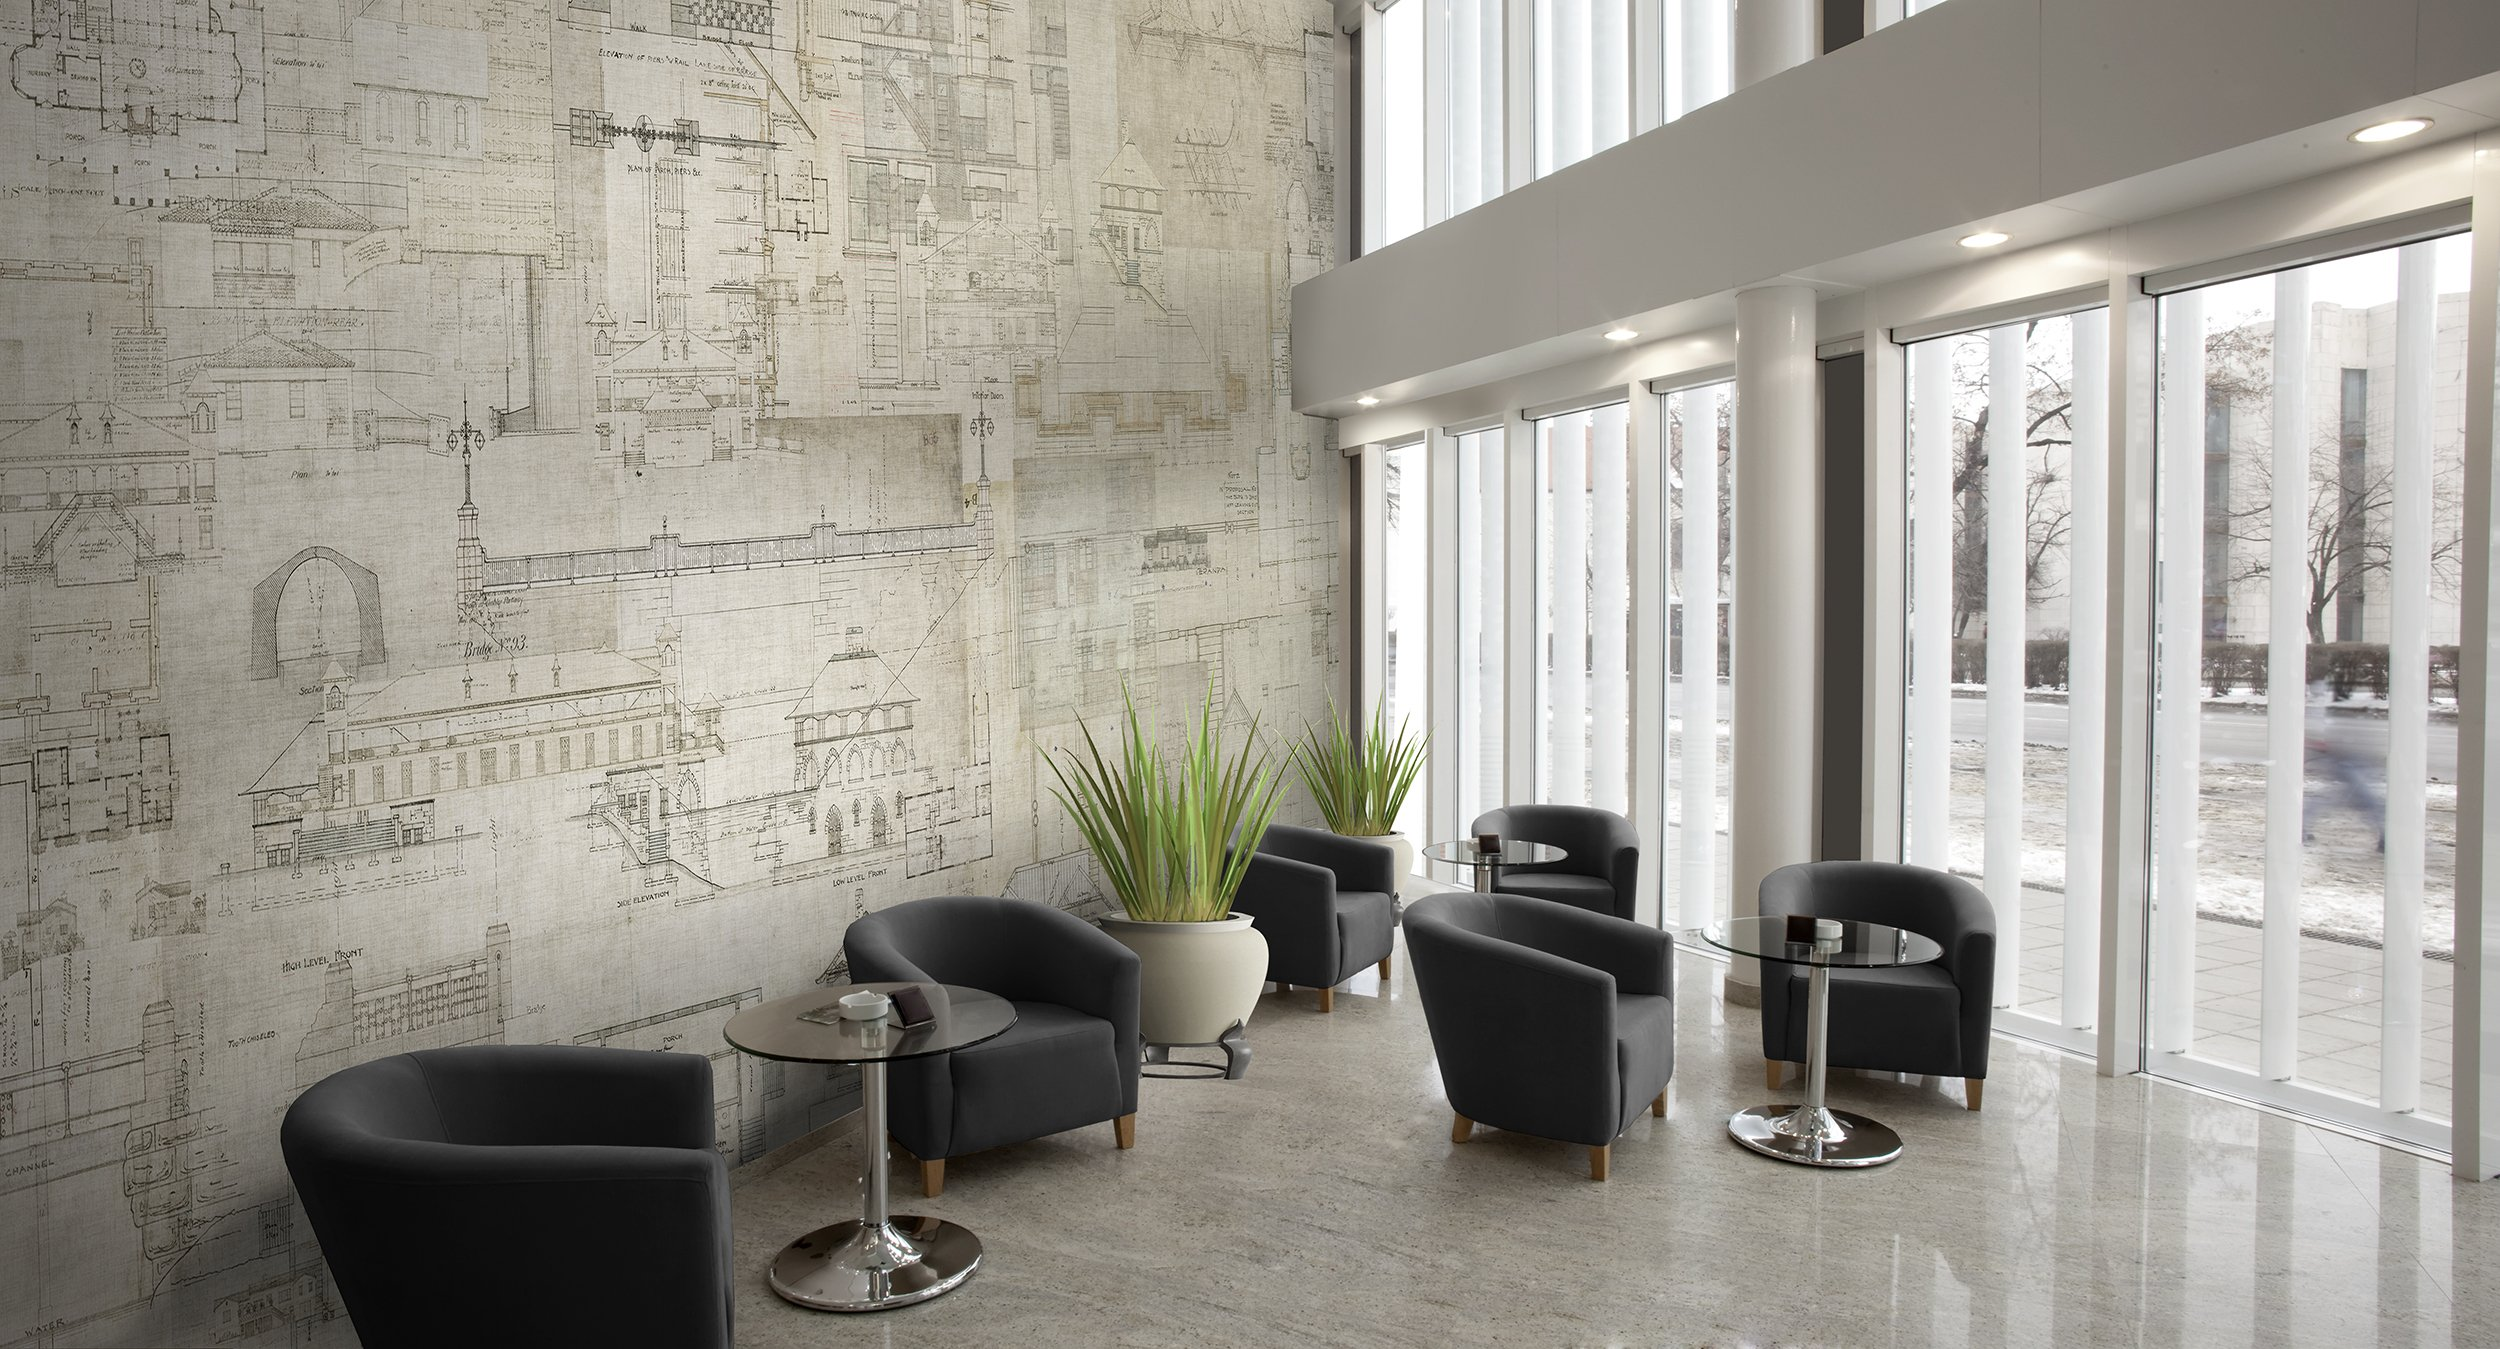 An architects dream check out our new digital wallcovering l60401 blueprint in black white malvernweather Gallery